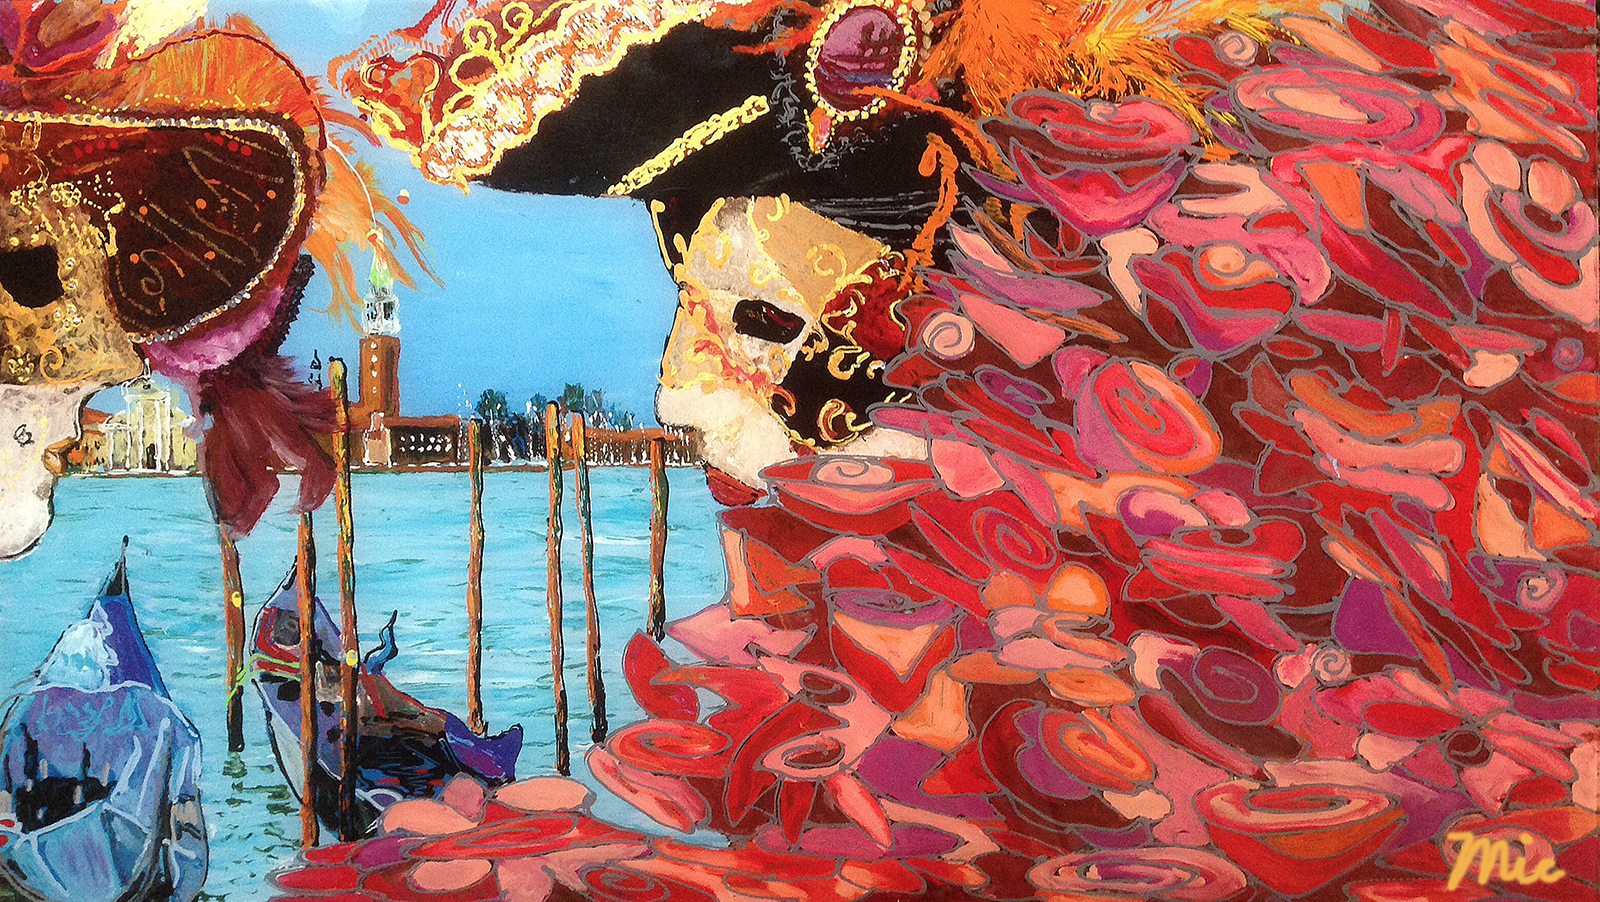 """Carnevale"" Venezia Italia - Acrylic on acylic panel 14"" x 25"" $2000Giclee Limited Edition and canvas prints are available. Please visit the prints gallery."